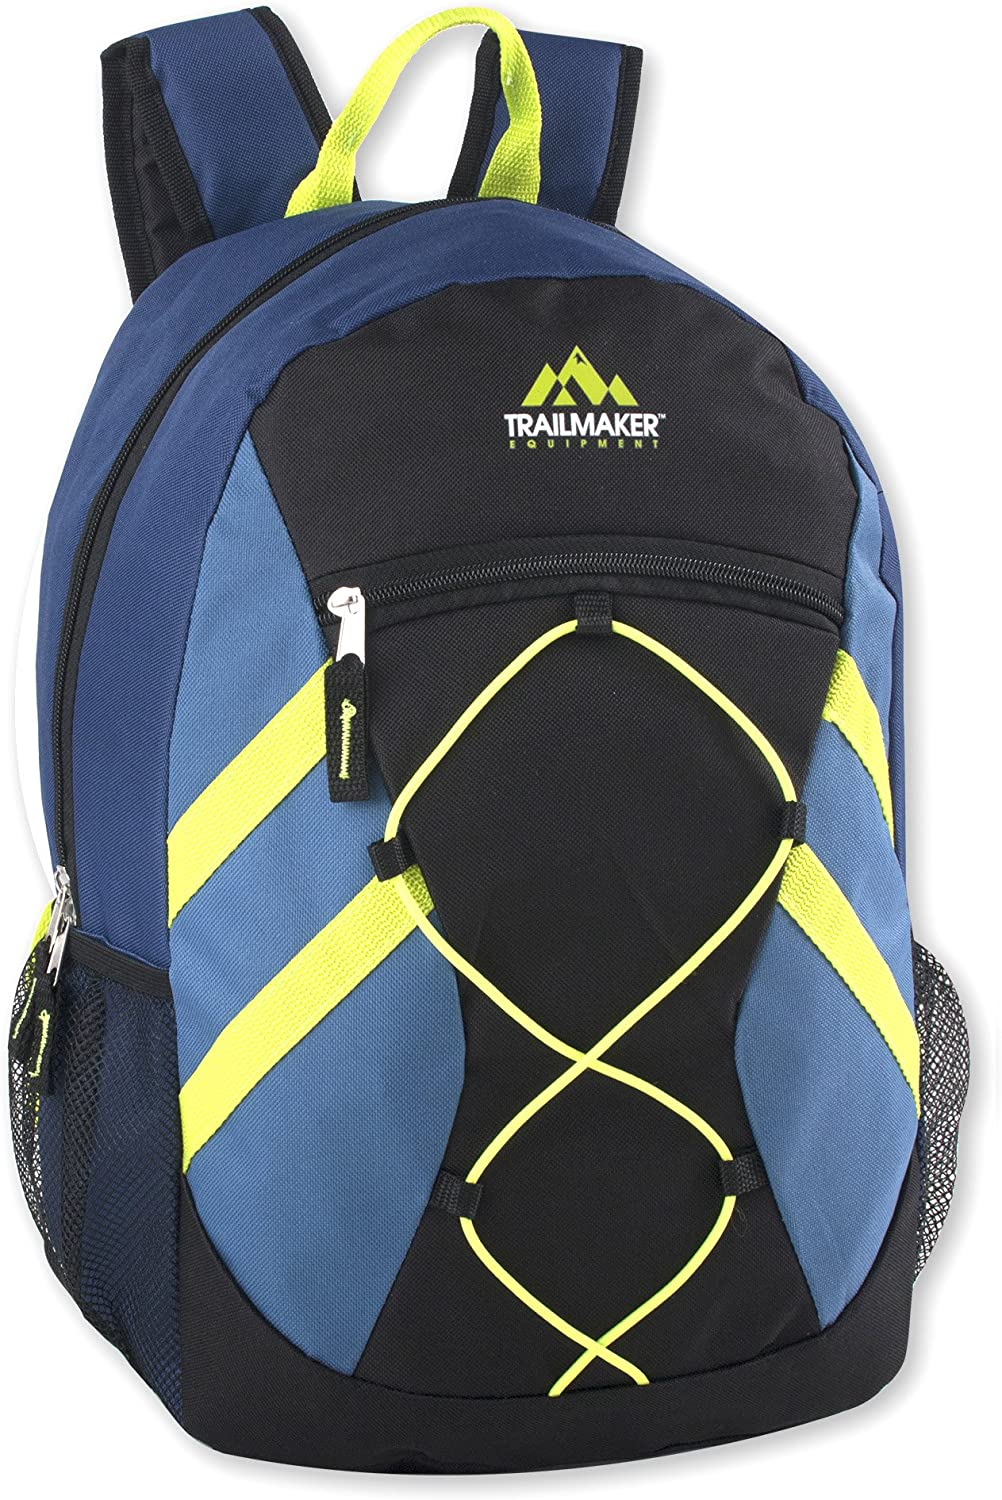 Blue Trailmaker Full Size 17 Inch Bungee Backpack With Mesh Side Pockets